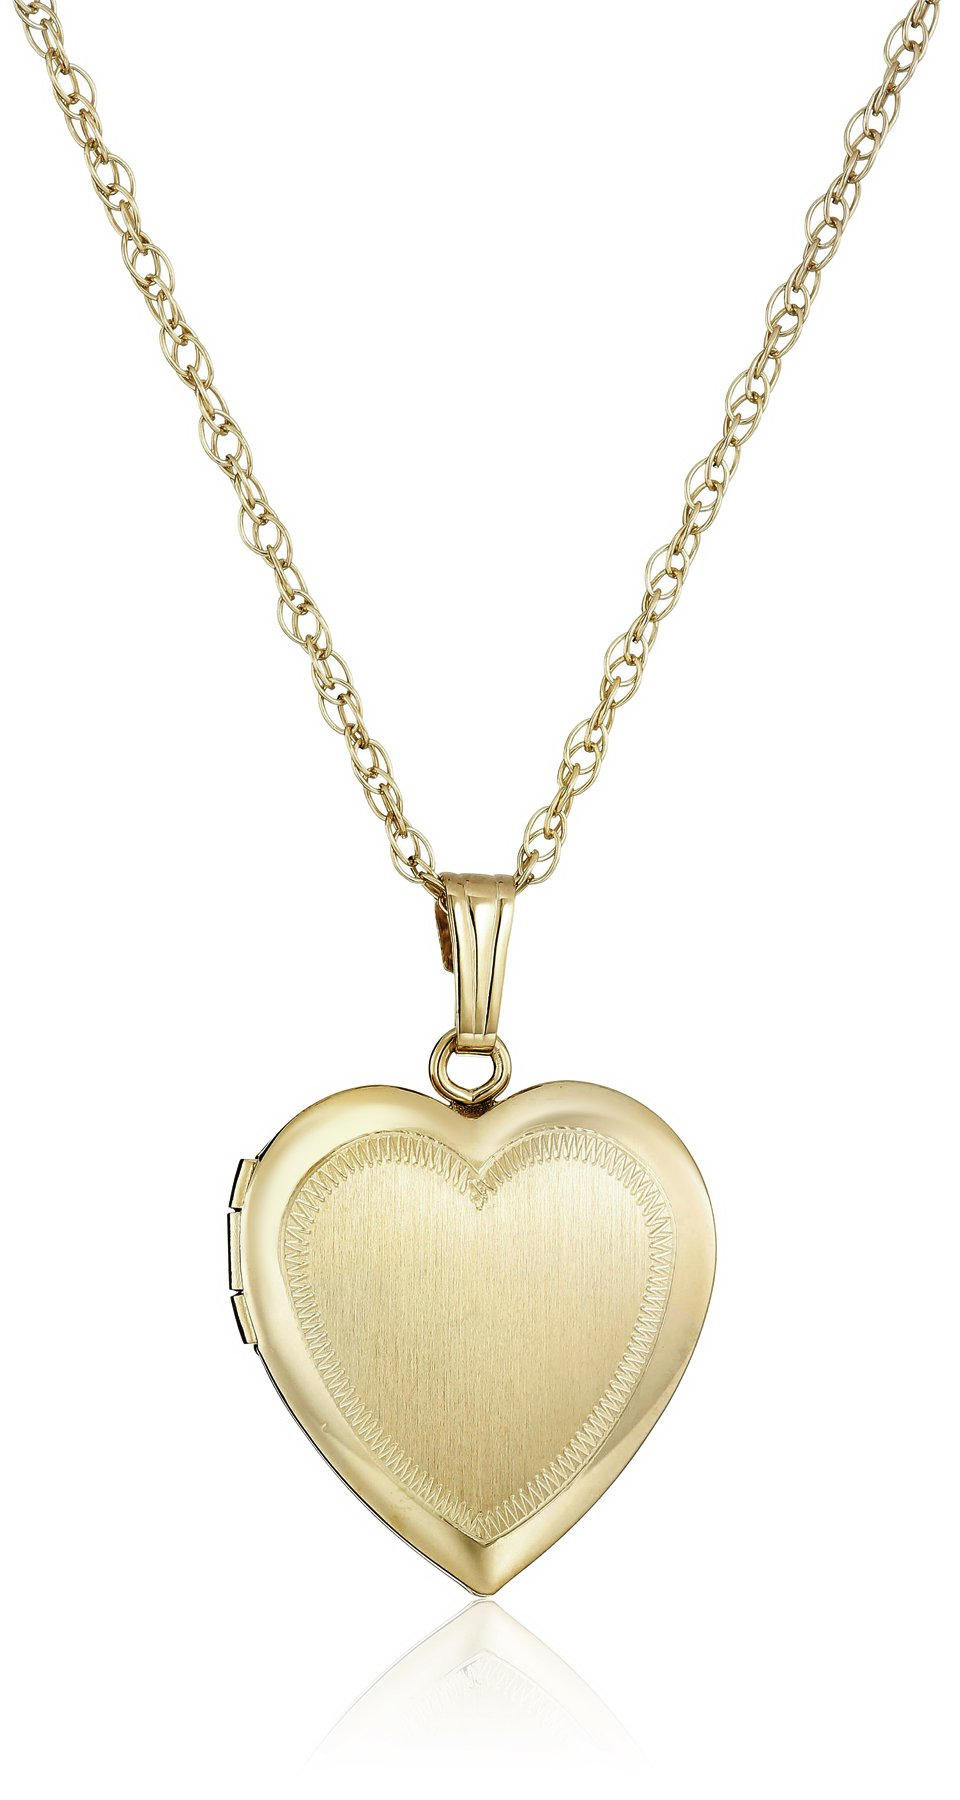 14k Yellow Gold-Filled Engraved Heart Locket Necklace, 18''